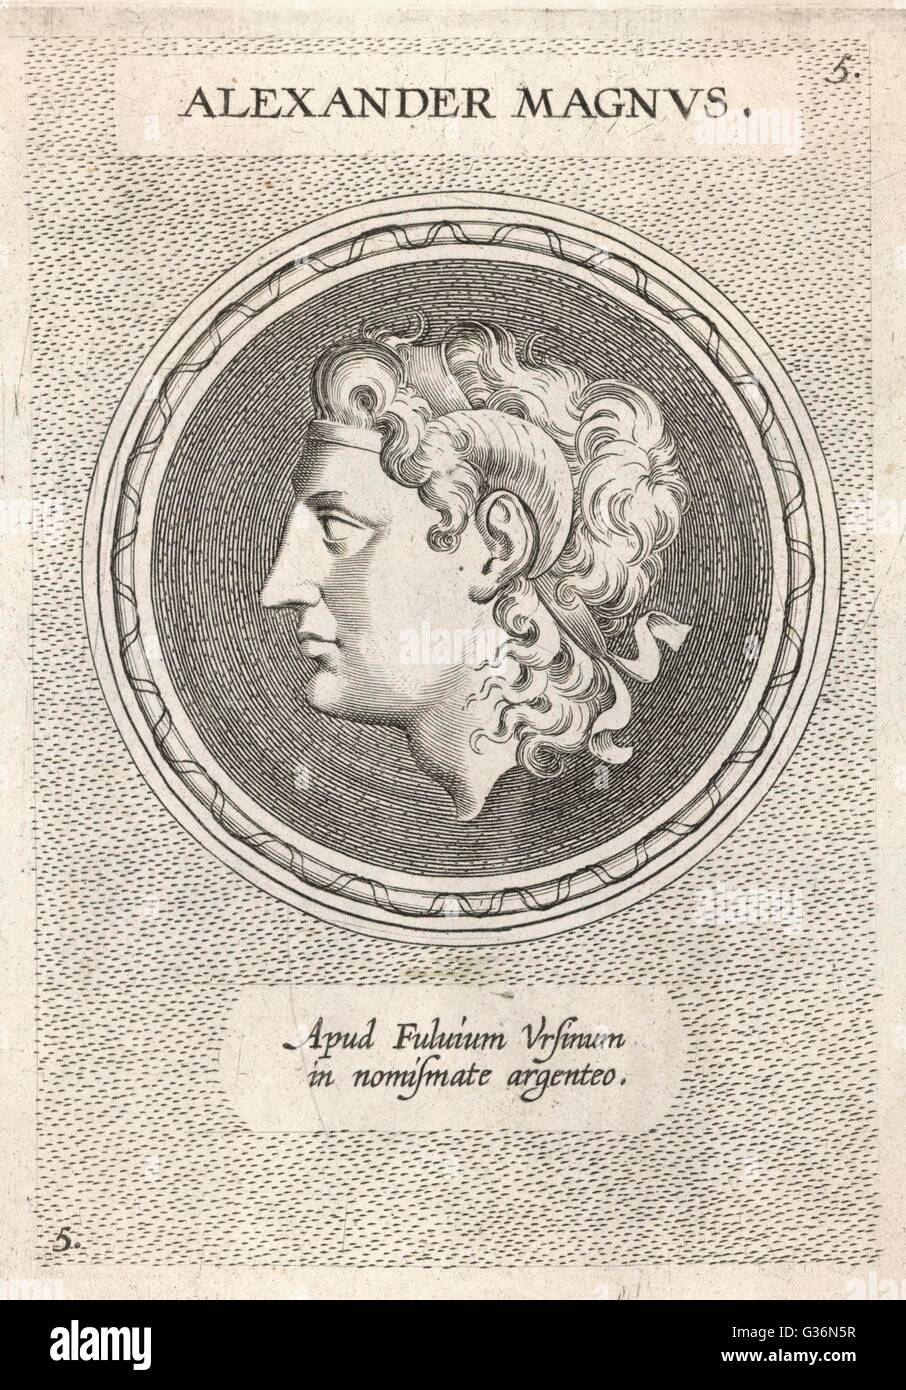 Alexander the Great (356 - 323 BC), King Alexander III of Macedon, wearing the horns signifying his descent from Stock Photo